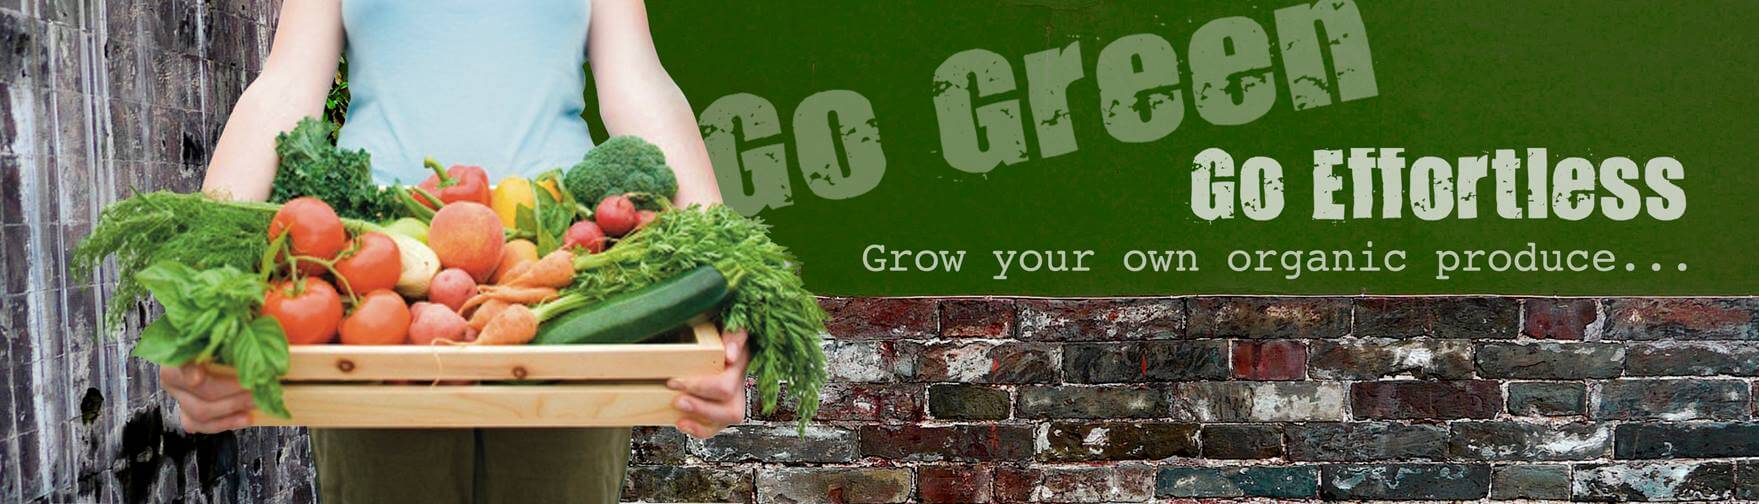 Homegrown Practical Aquaponics - Grow your own organic products